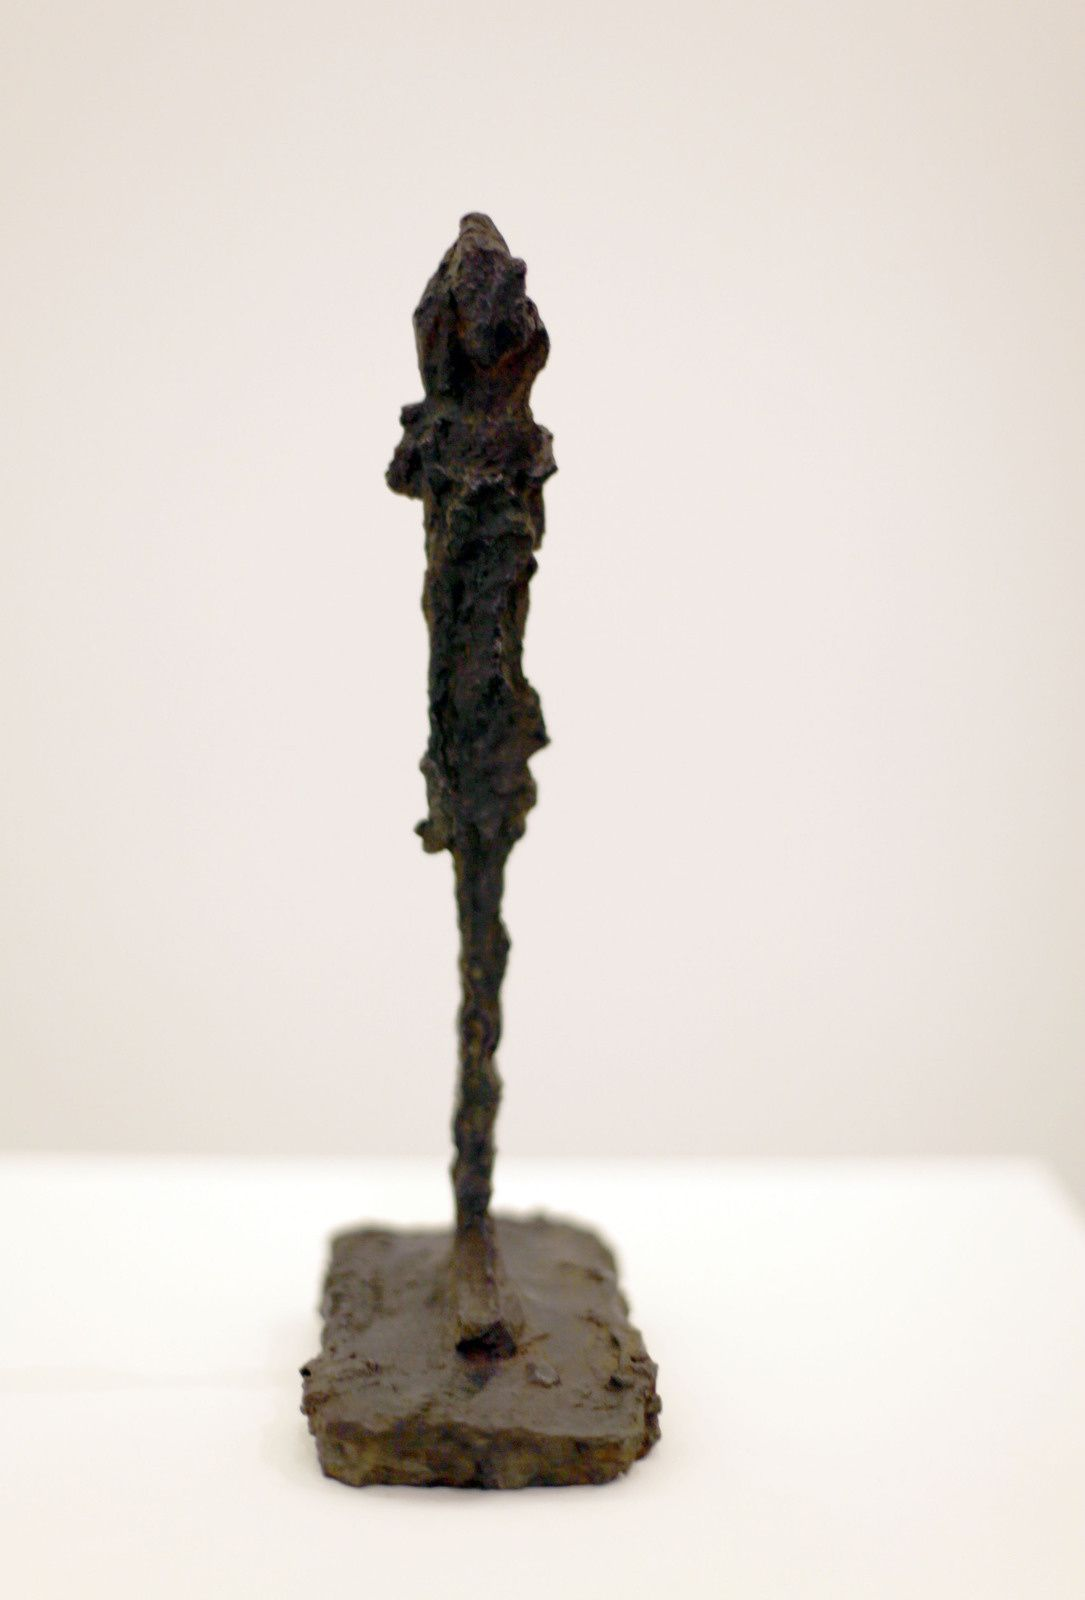 """Figurine"", vers 1956 de Alberto Giacometti - Courtesy Fondation Giacometti, Paris  © Photo Éric Simon"